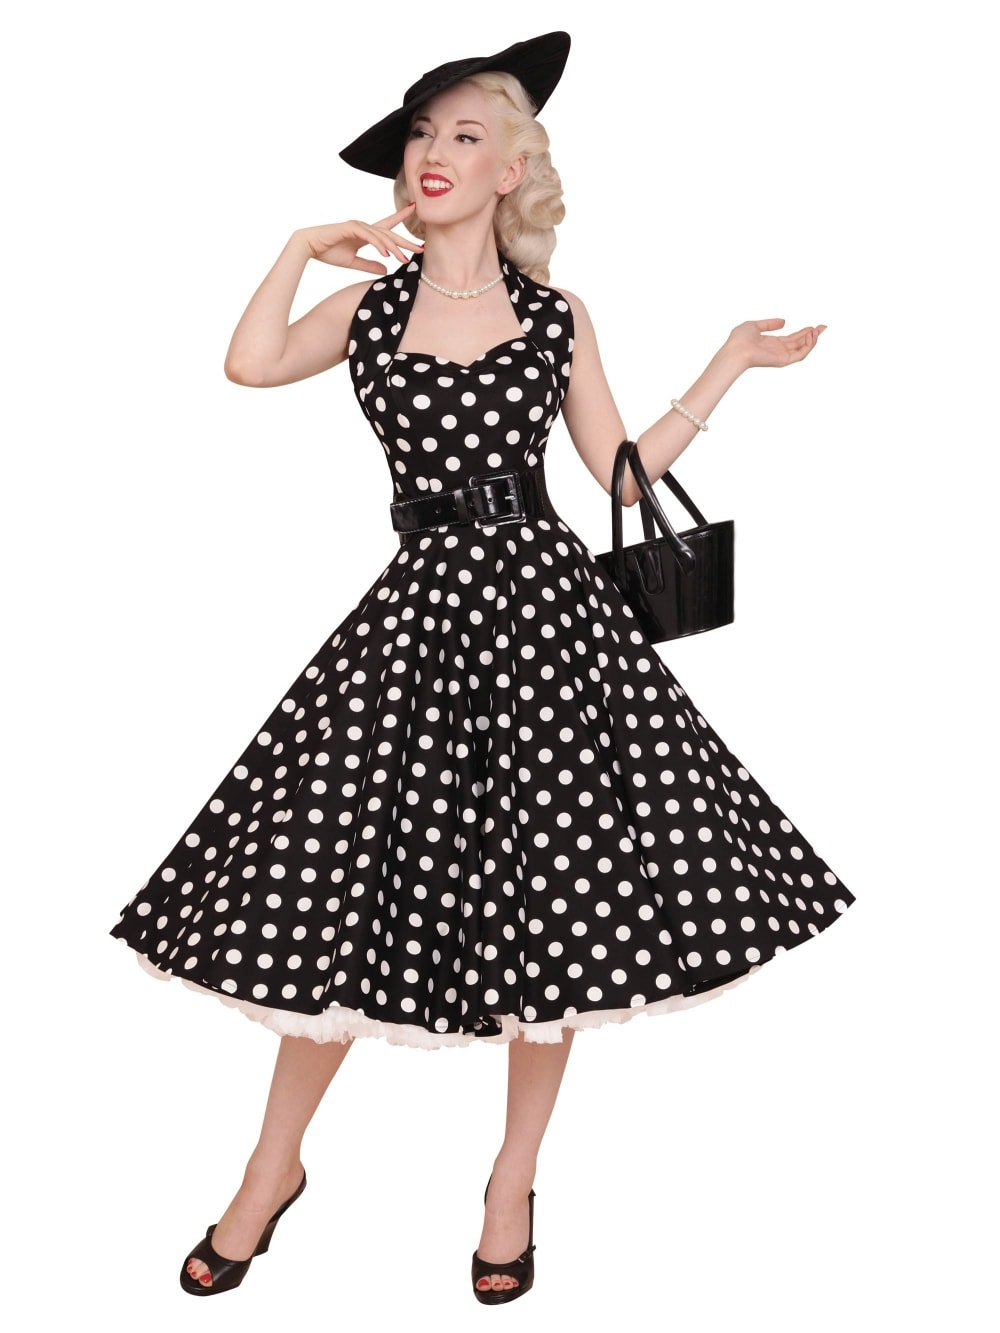 Vintage Black and White Polka Dot Dress